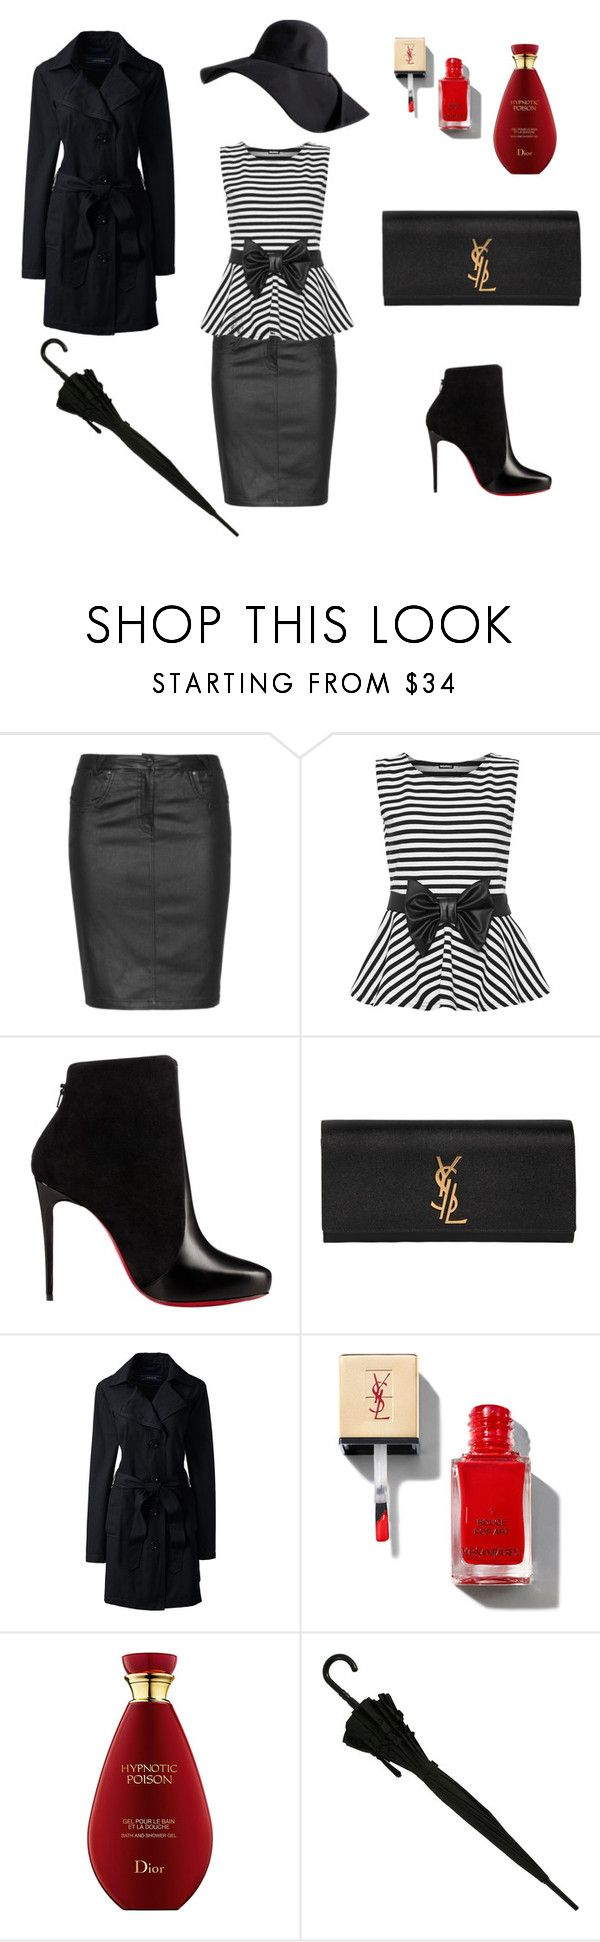 THE STYLE AROUND THE WORLD by lauradamiani on Polyvore featuring moda, WearAll, Lands' End, Zhenzi, Christian Louboutin and Yves Saint Laurent